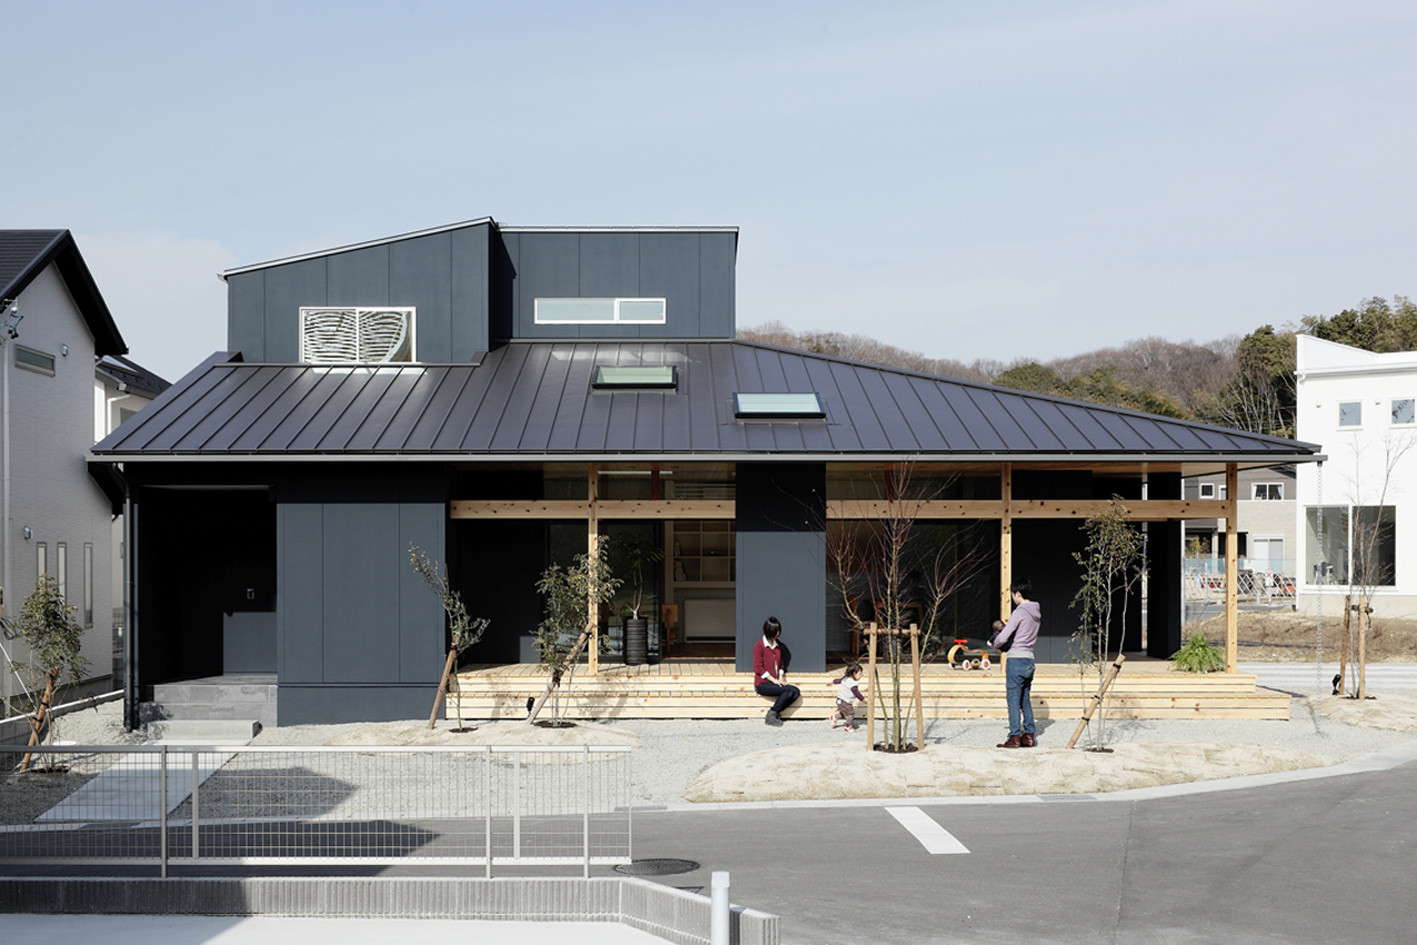 Agui House / ALTS Design Office, Courtesy of ALTS Design Office